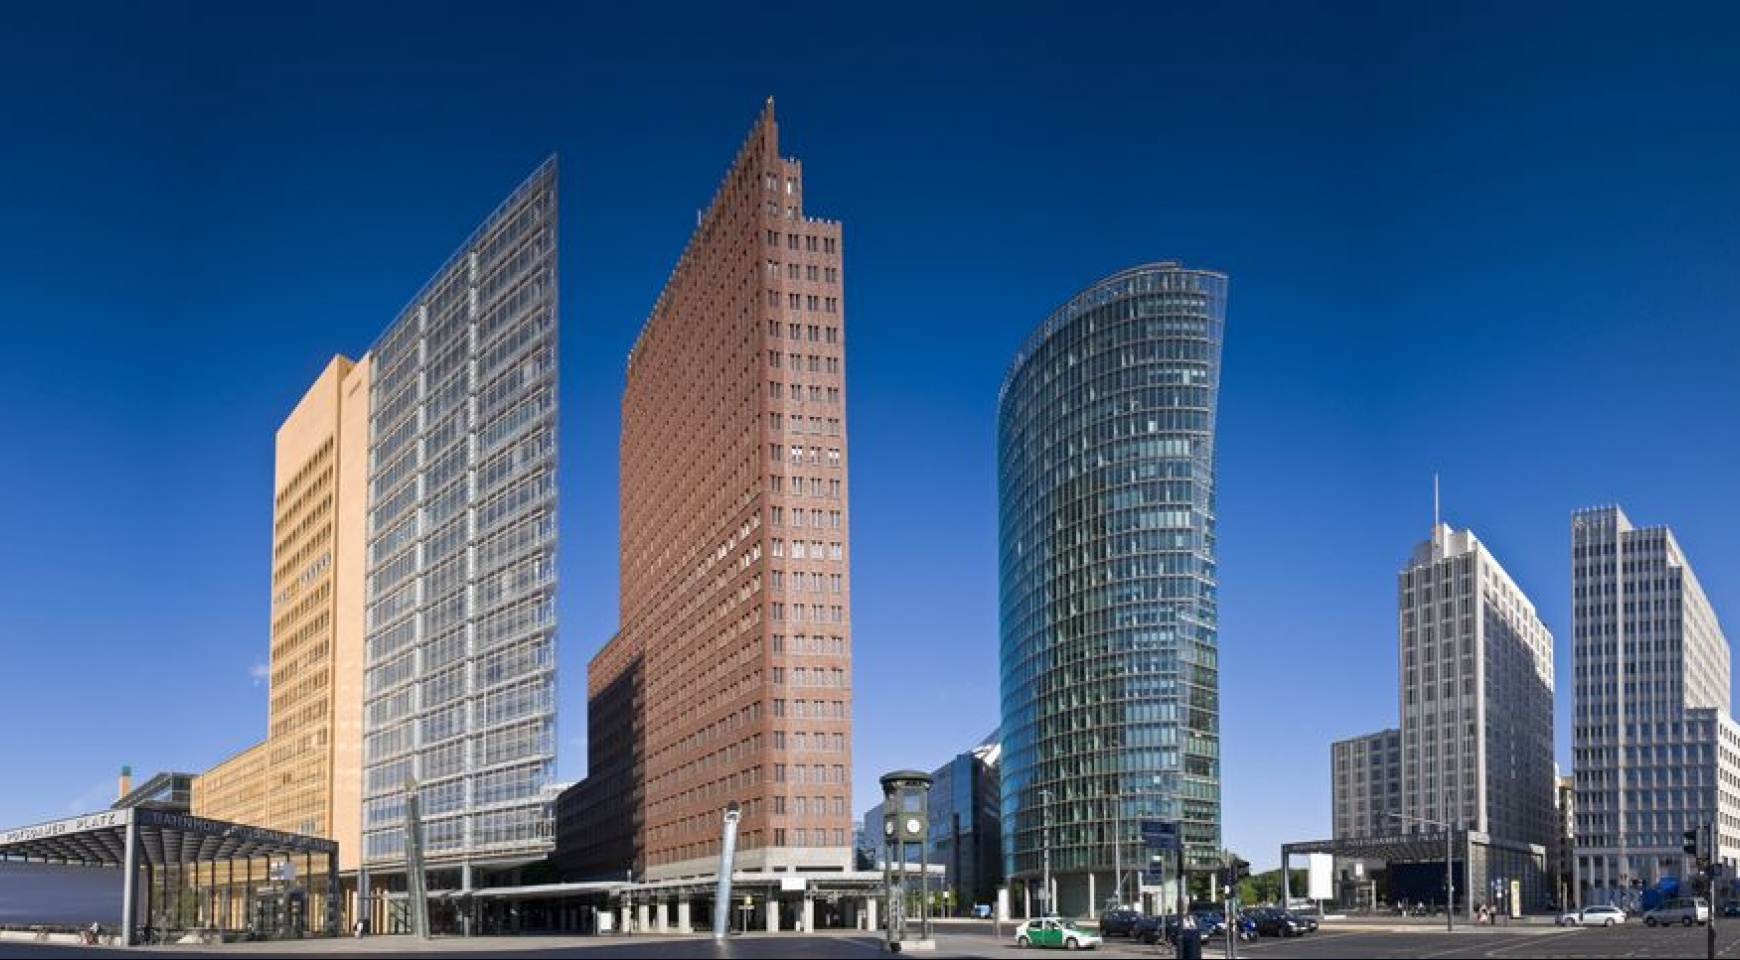 Commercial real estate in Berlin